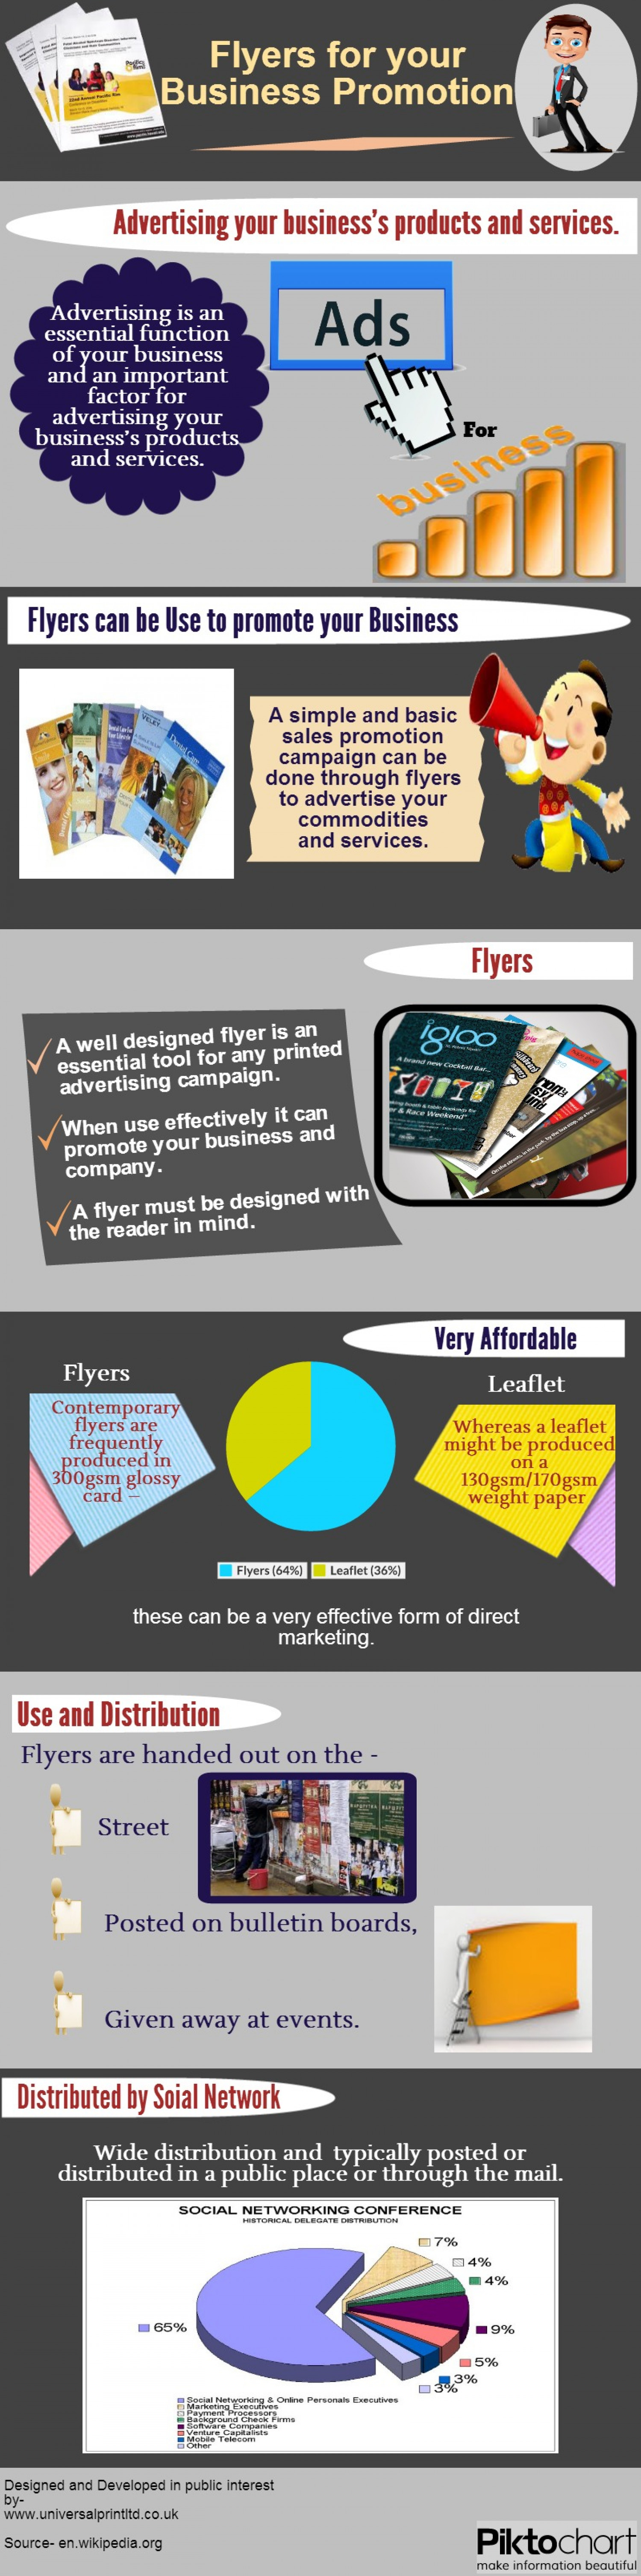 Flyers for your Business Promotion Infographic